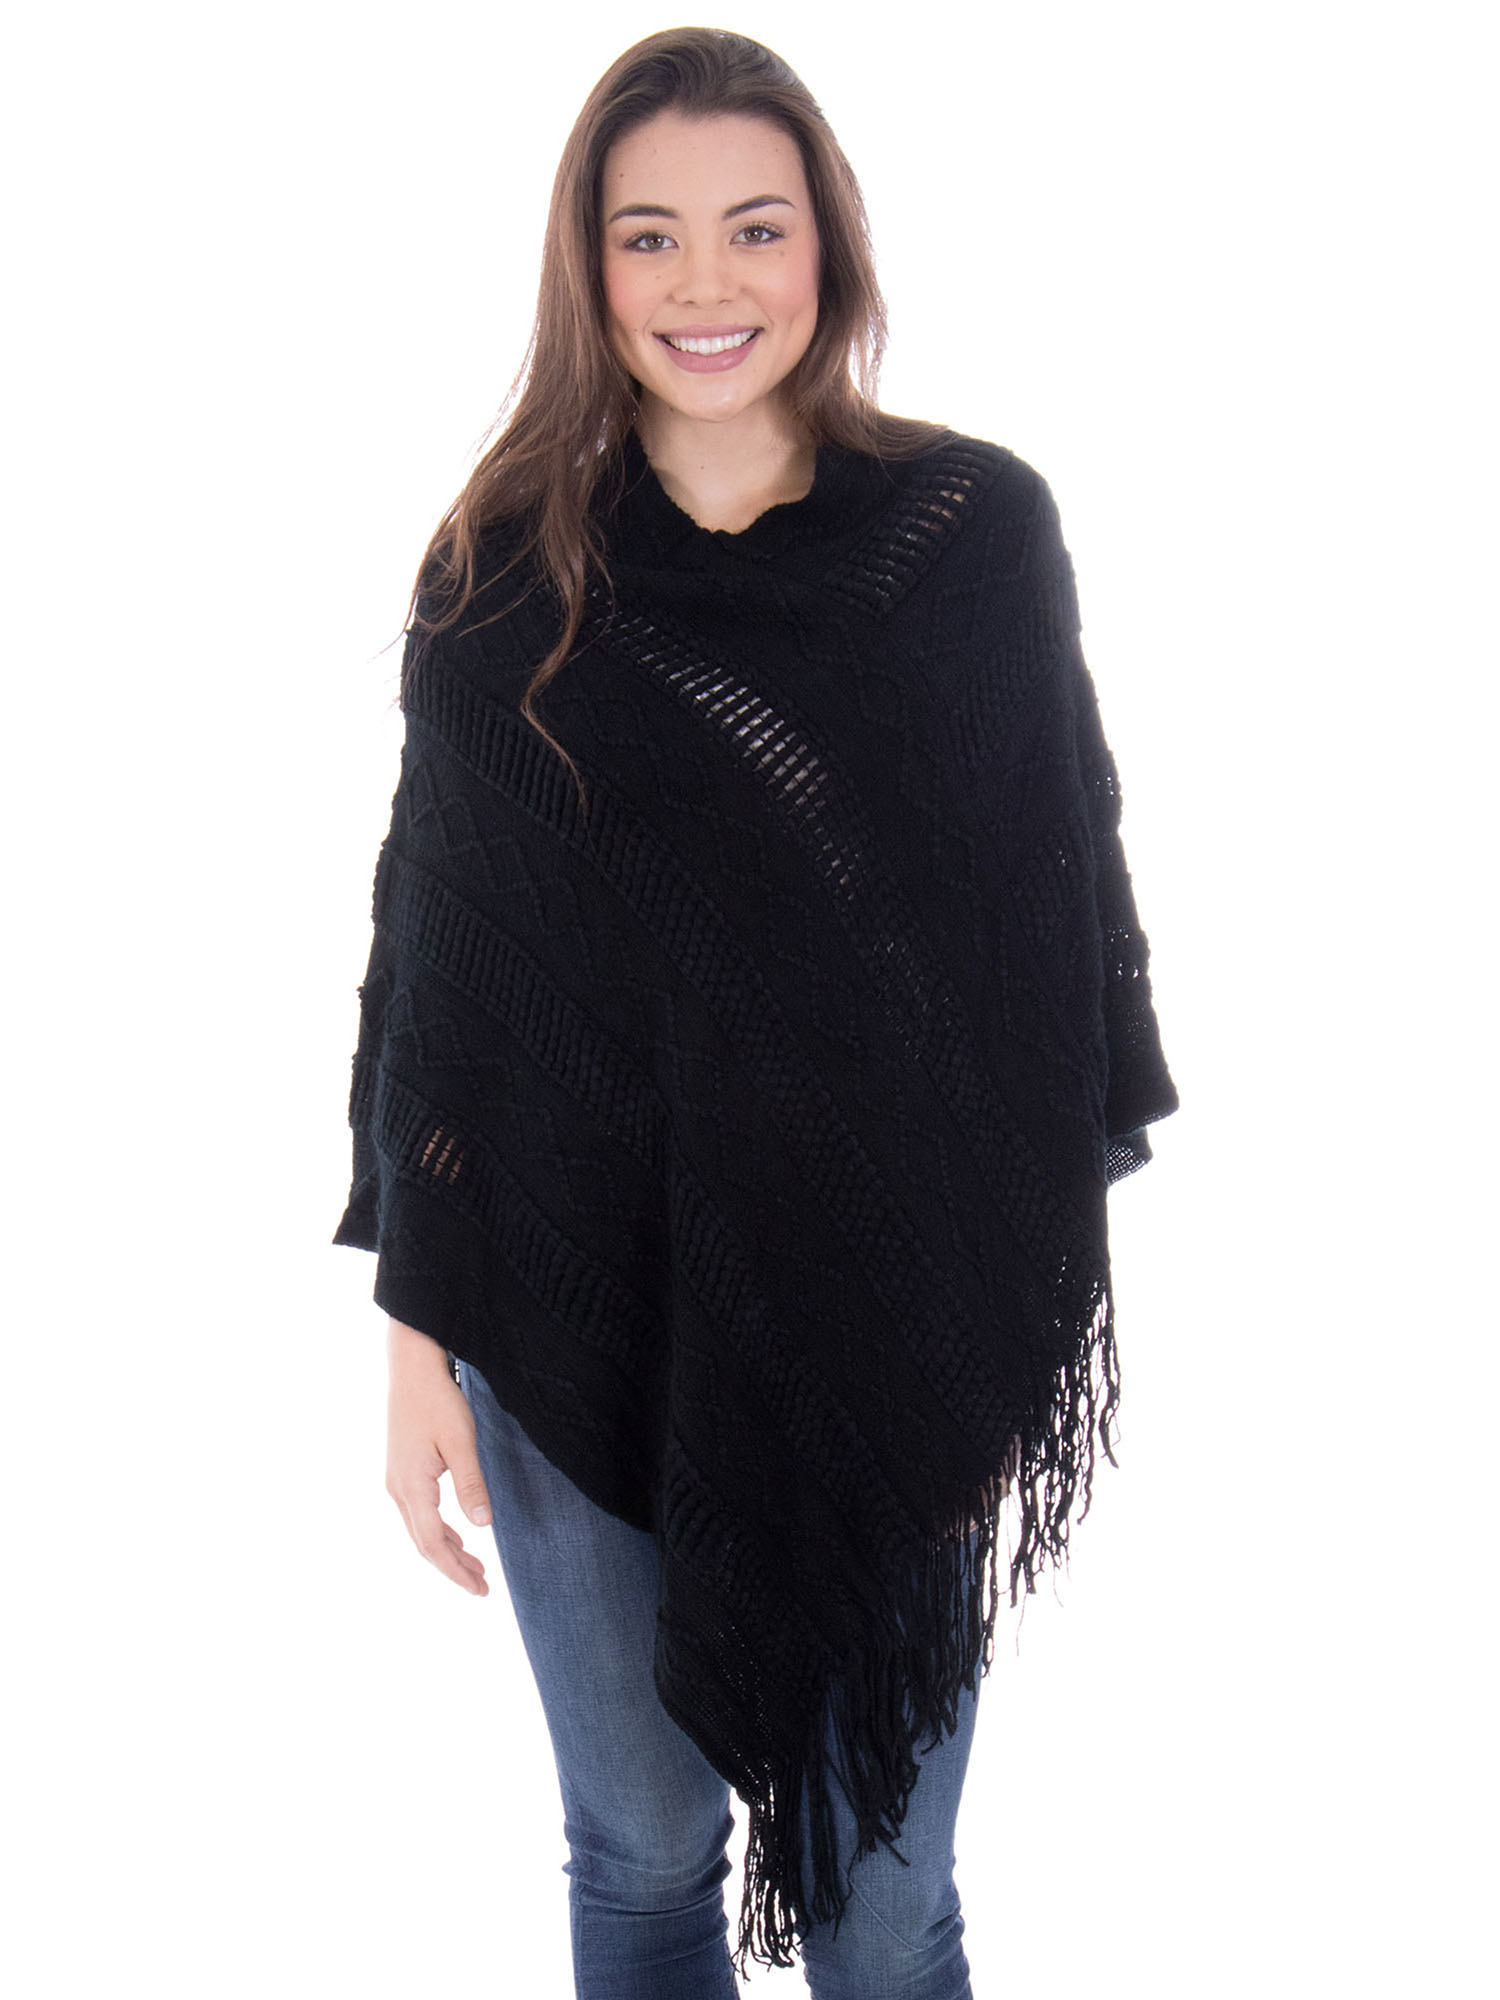 Click here to buy Ponchos for Women Knitted Pullover Sweater Poncho Shawl Burgundy.